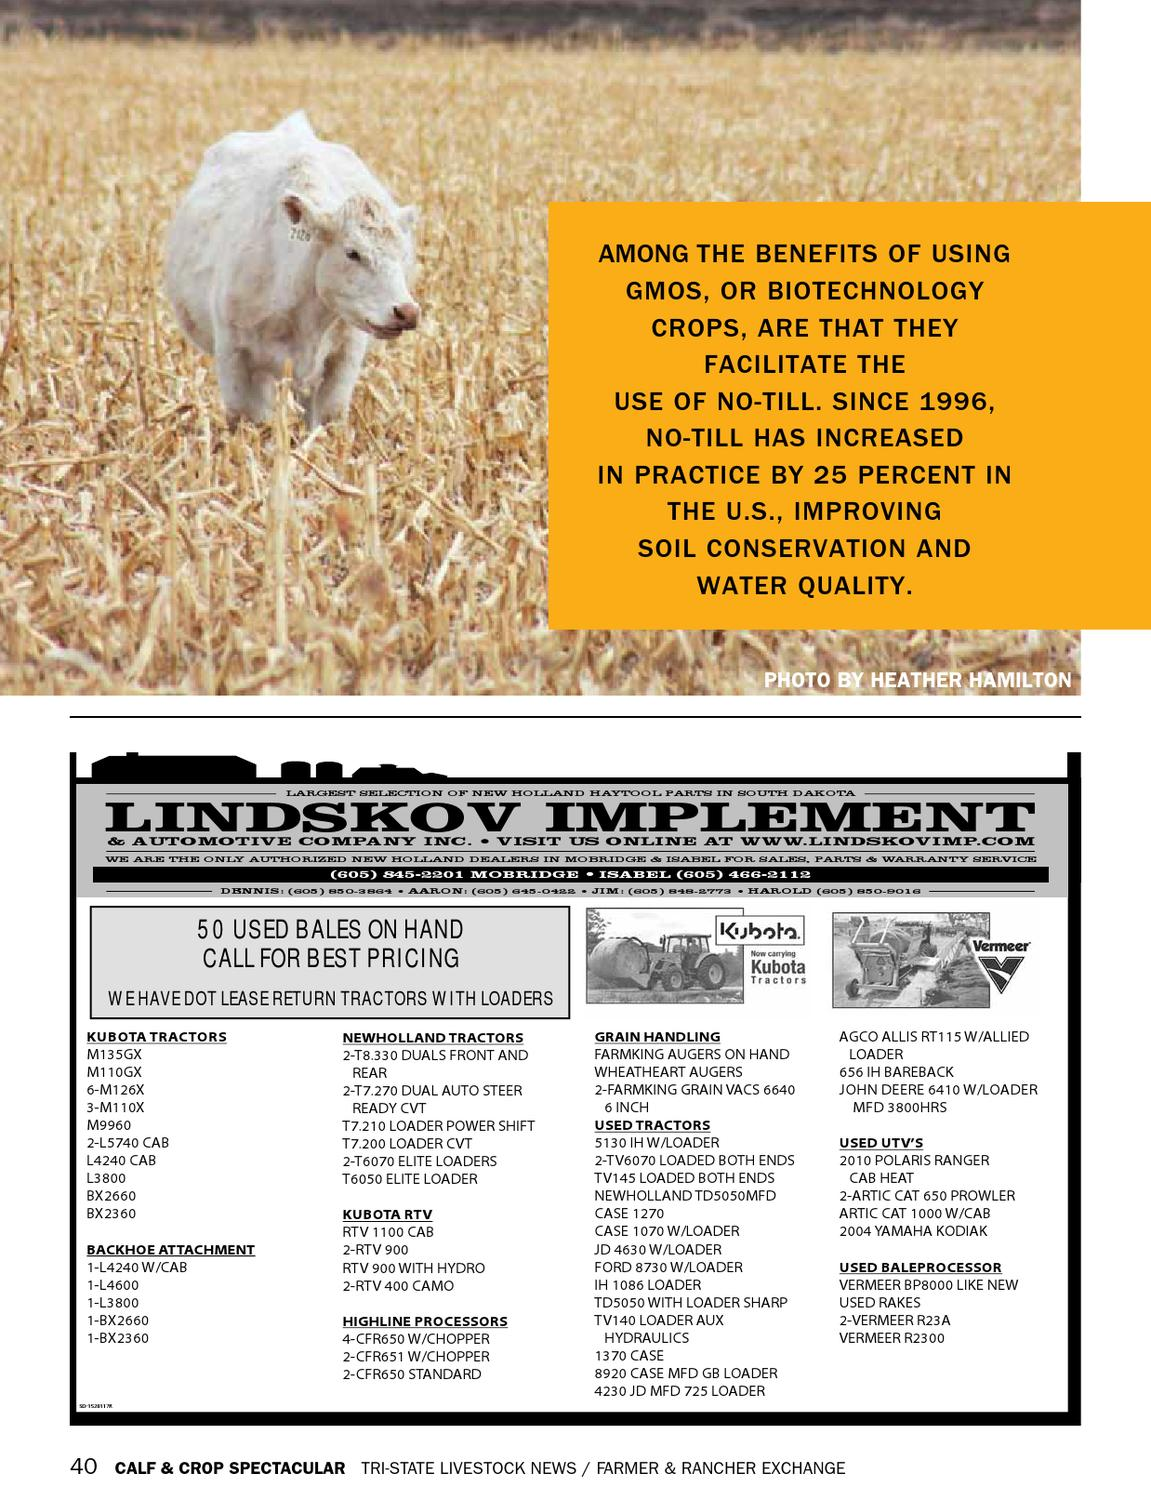 Calf Crop Spectacular By Tri State Livestock News Farmer Ford 8n Loader Rancher Exchange Issuu